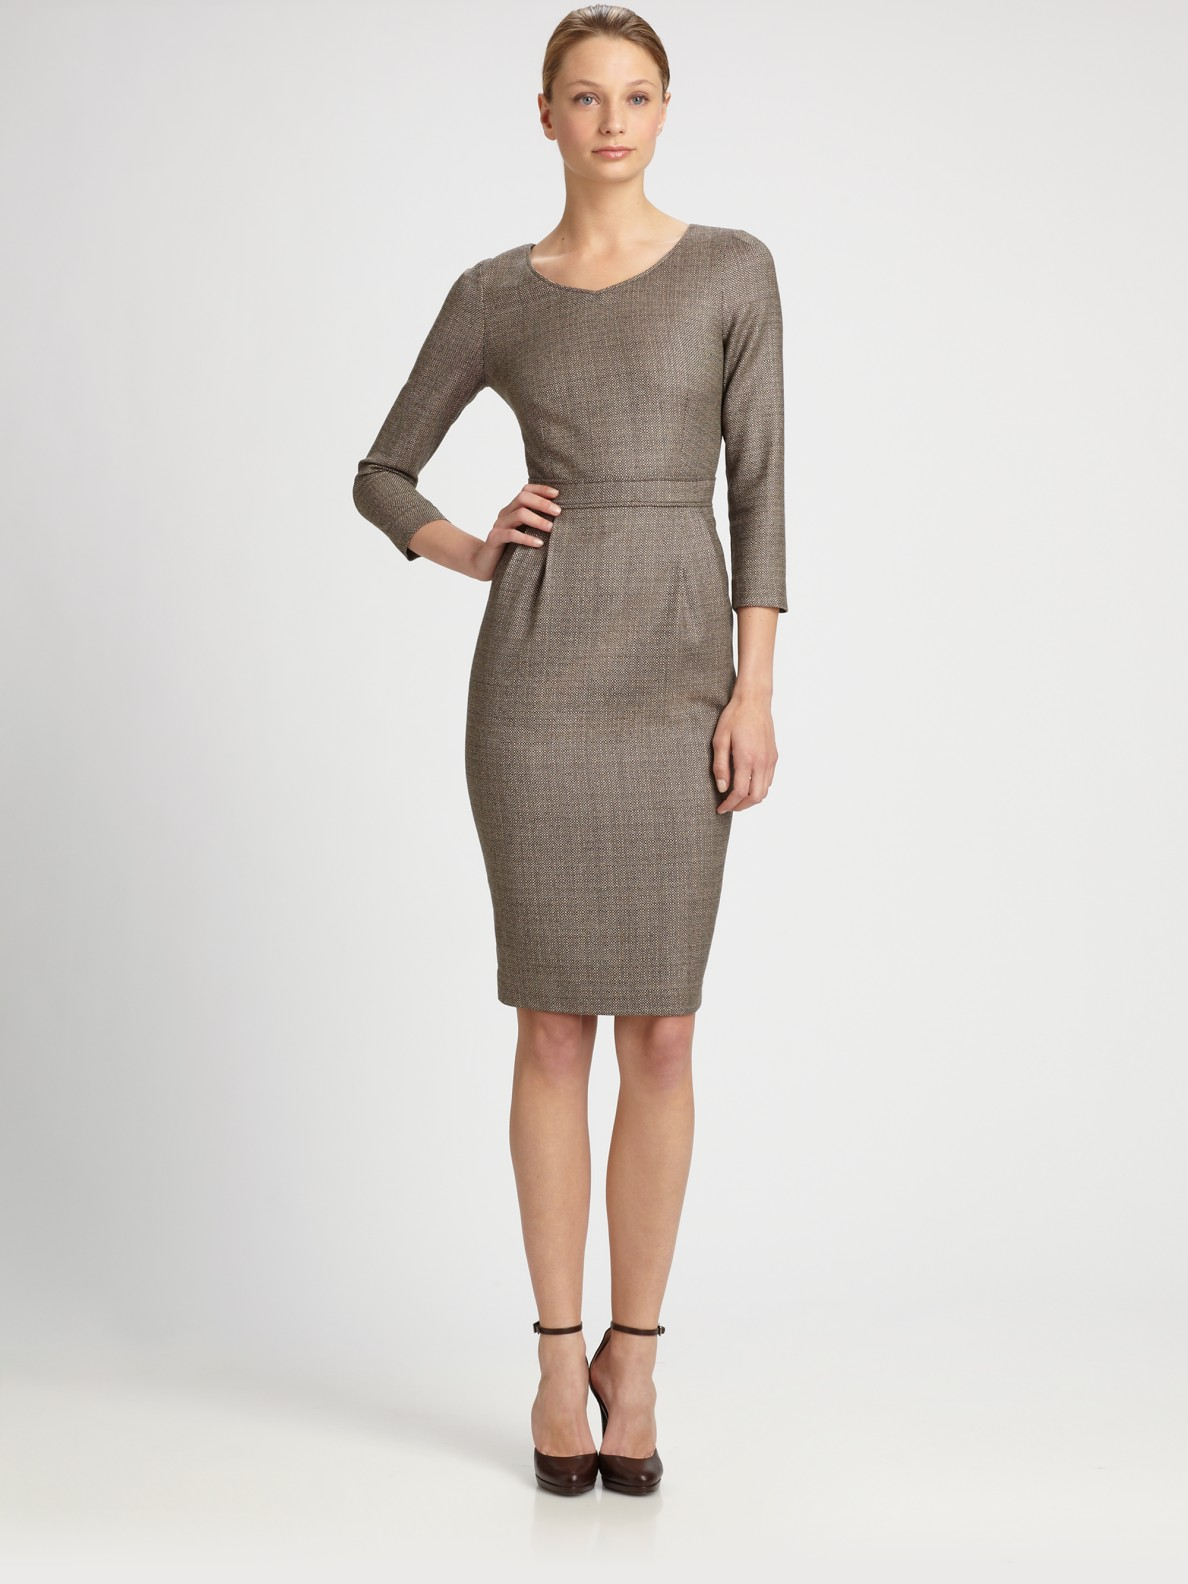 Armani clothing for women